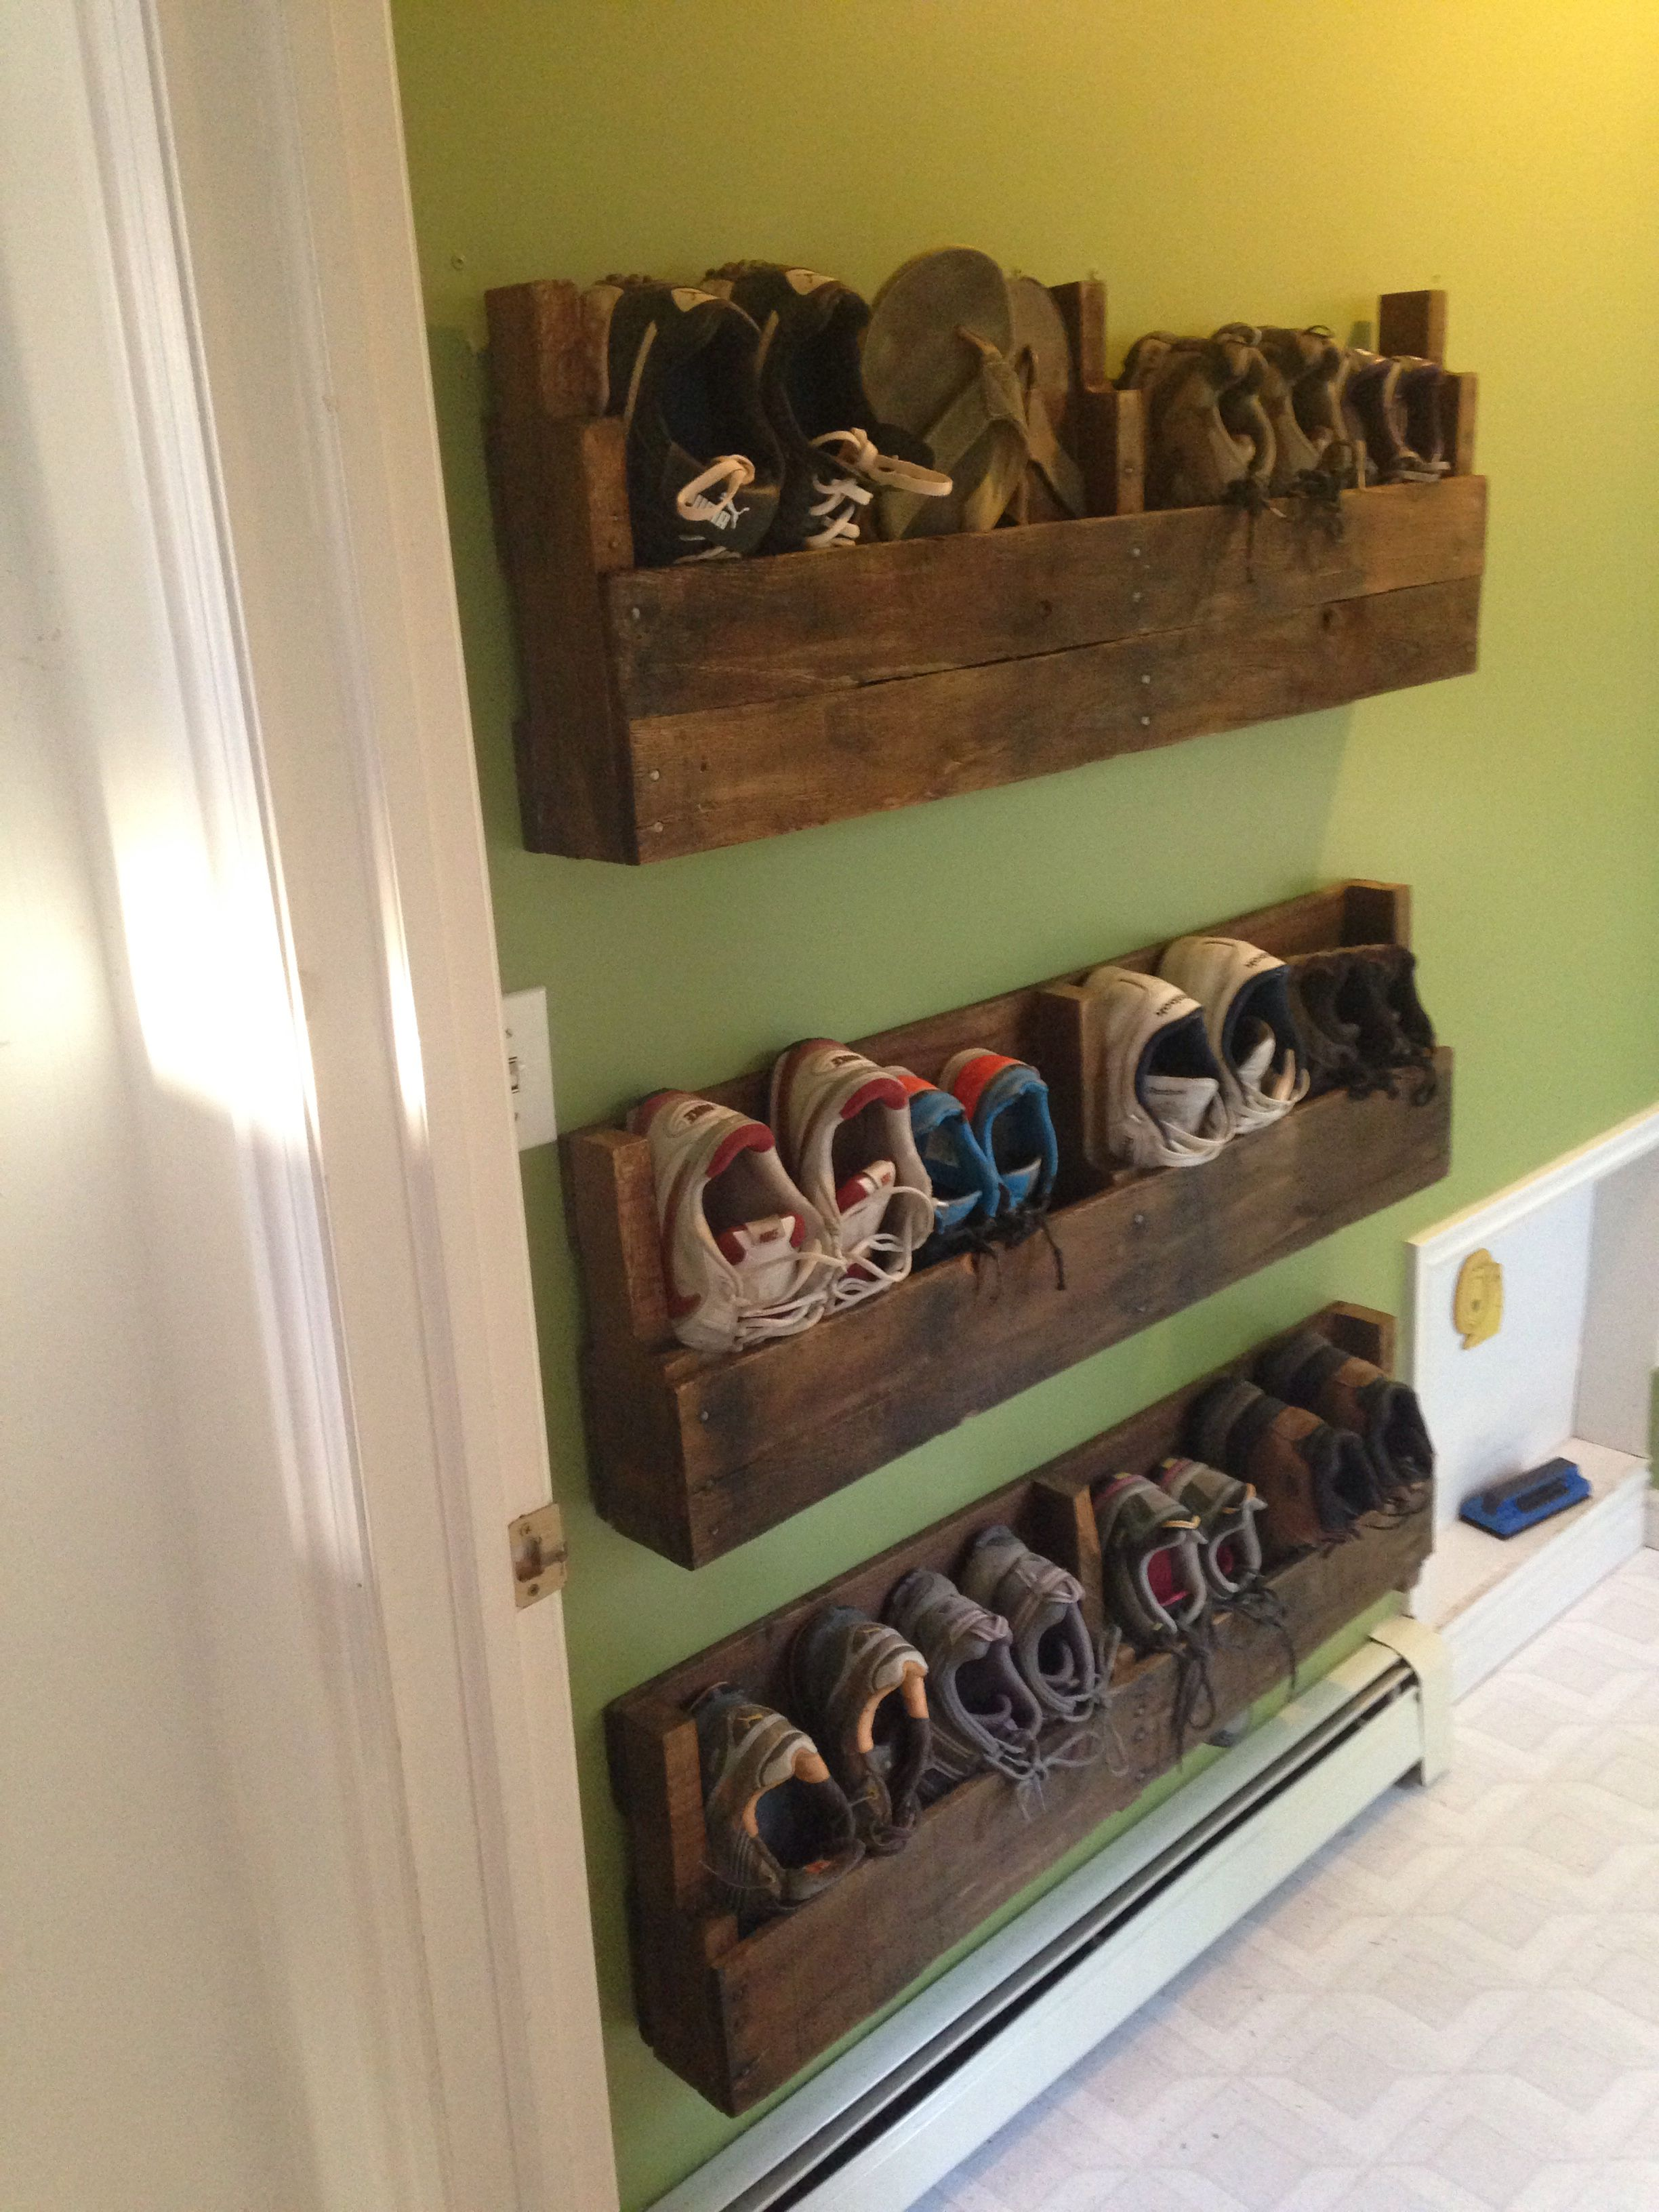 Dyi shoe rack made out of pallets